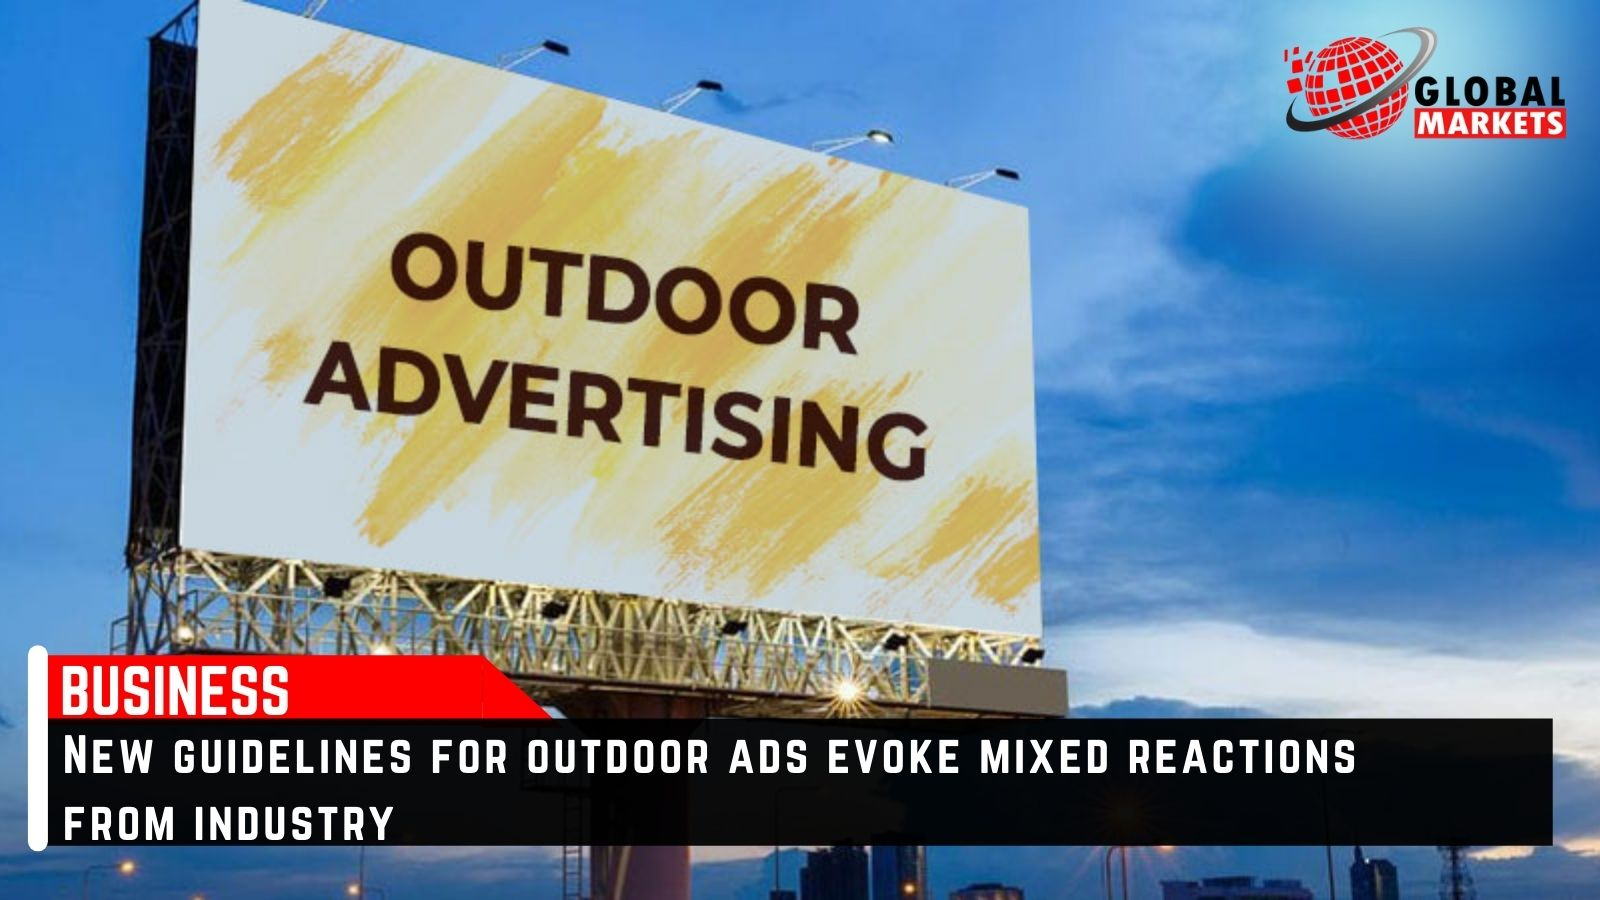 New guidelines for outdoor ads evoke mixed reactions from industry